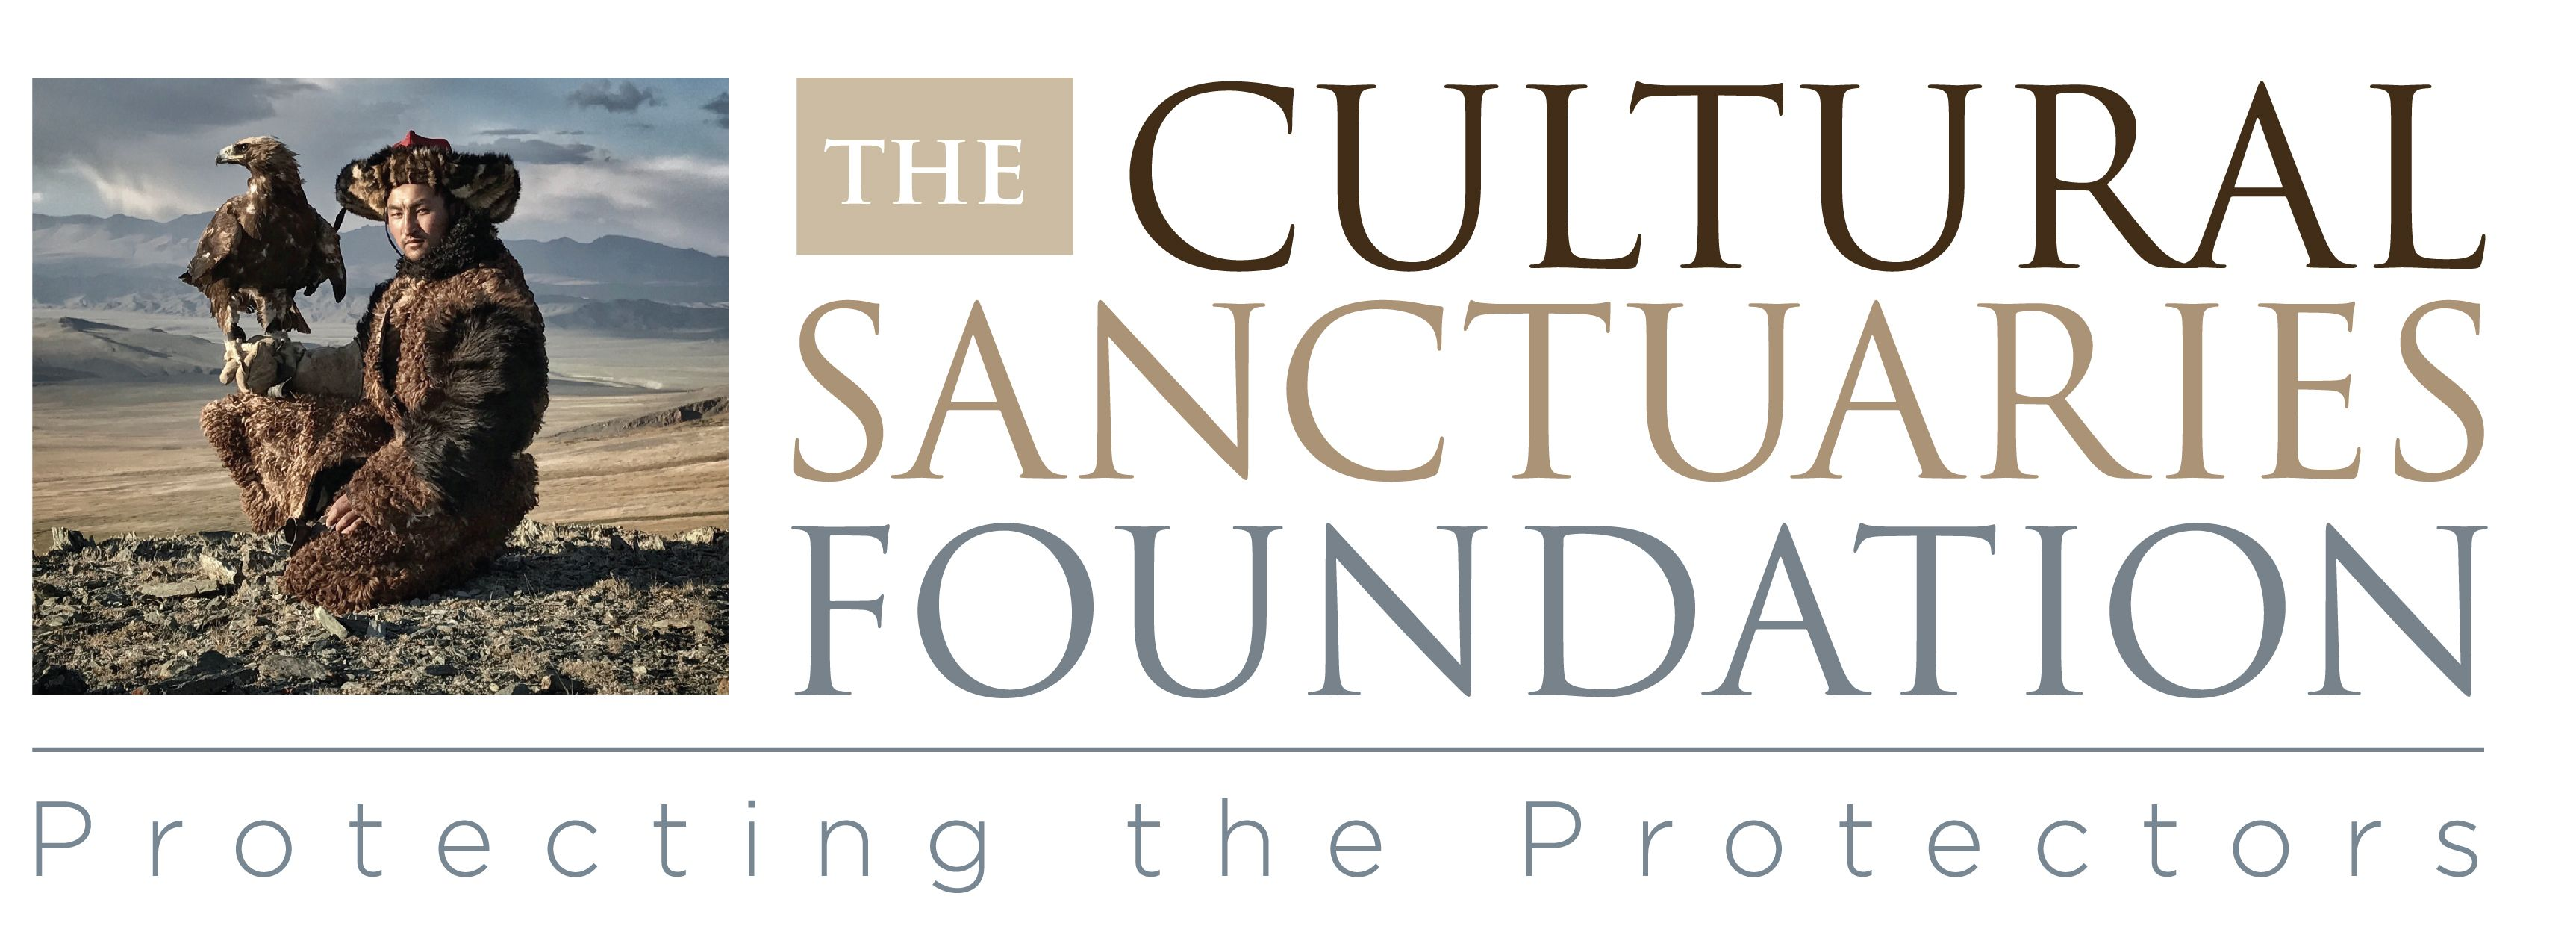 Cultural Sanctuaries Foundation